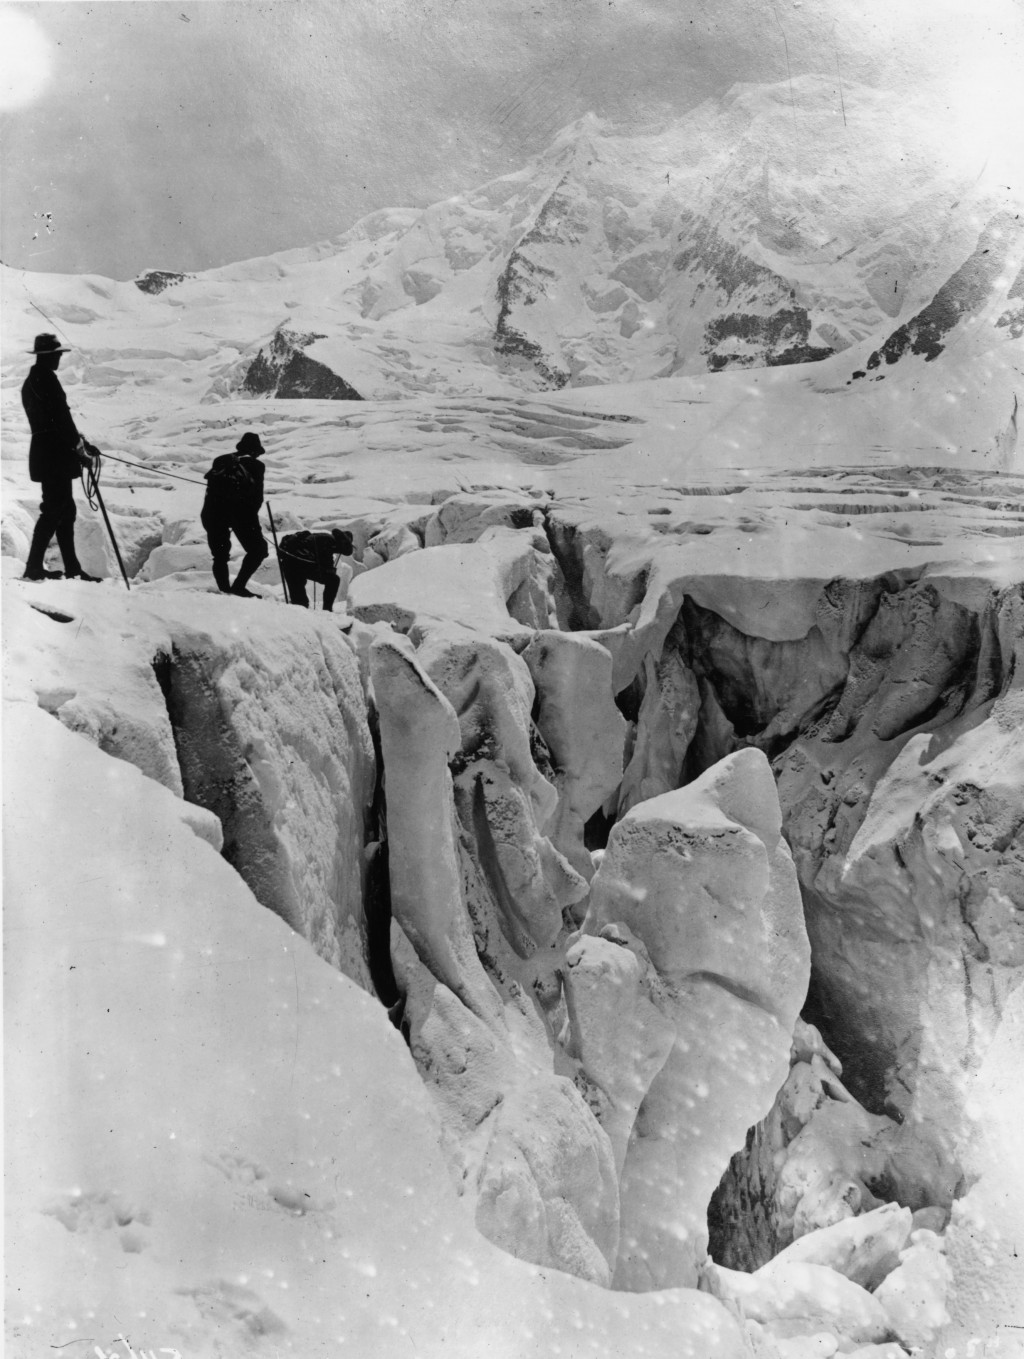 December 1910:  Three mountaineers crossing a crevsasse on the Pers Glacier in the Alps.  (Photo by Topical Press Agency/Getty Images)